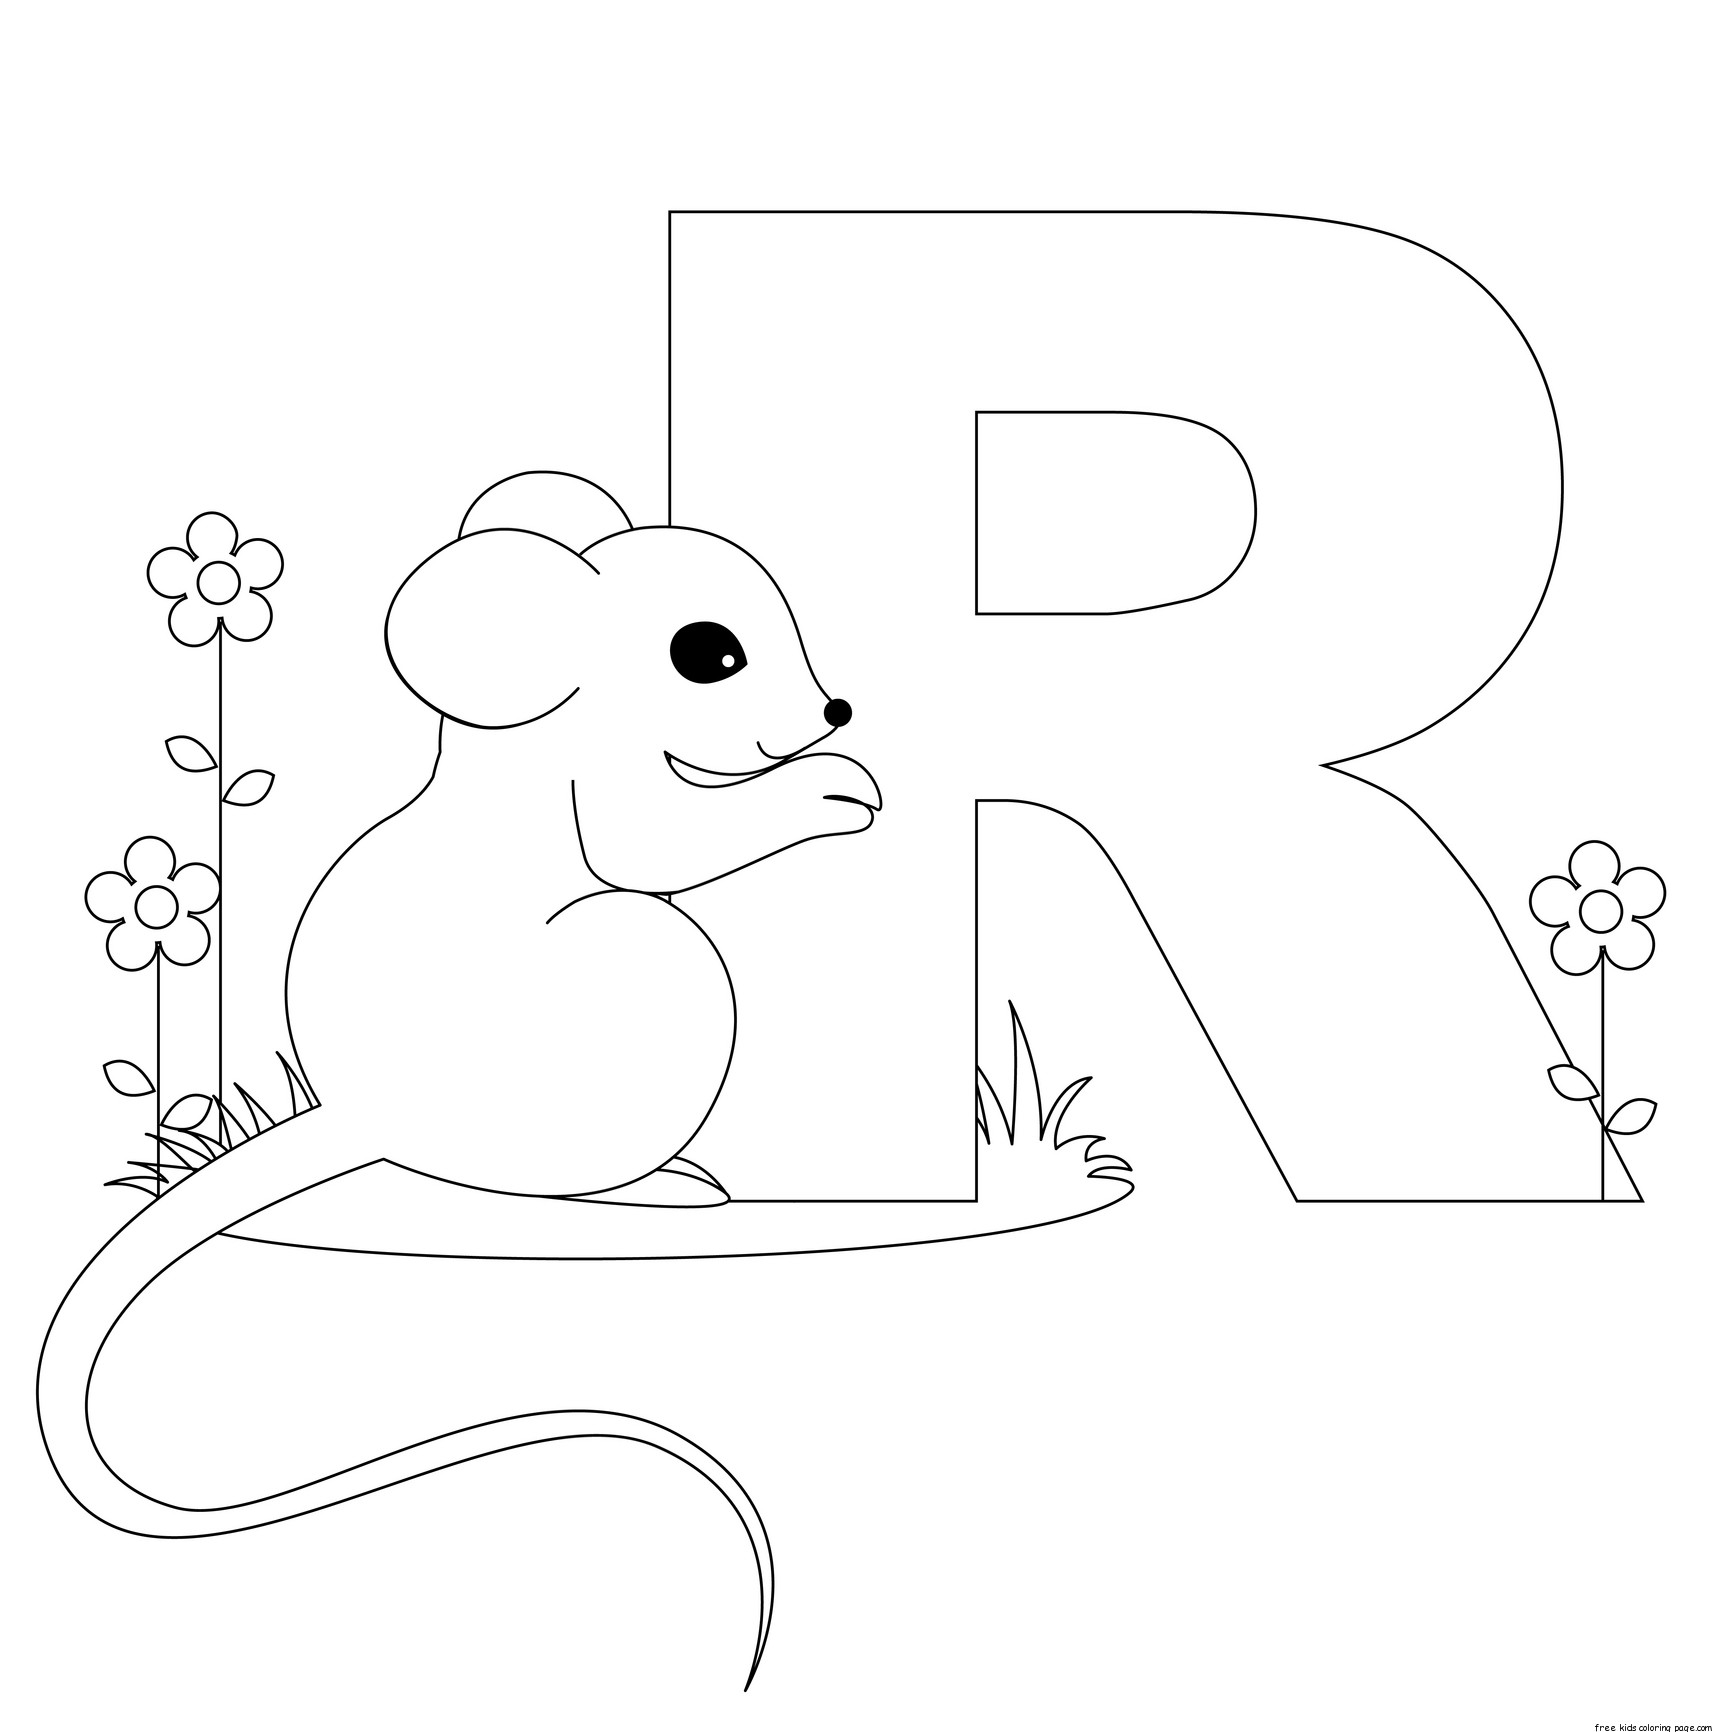 Animal Alphabet Coloring Pages Printable : Printable animal alphabet letters coloring pages letter